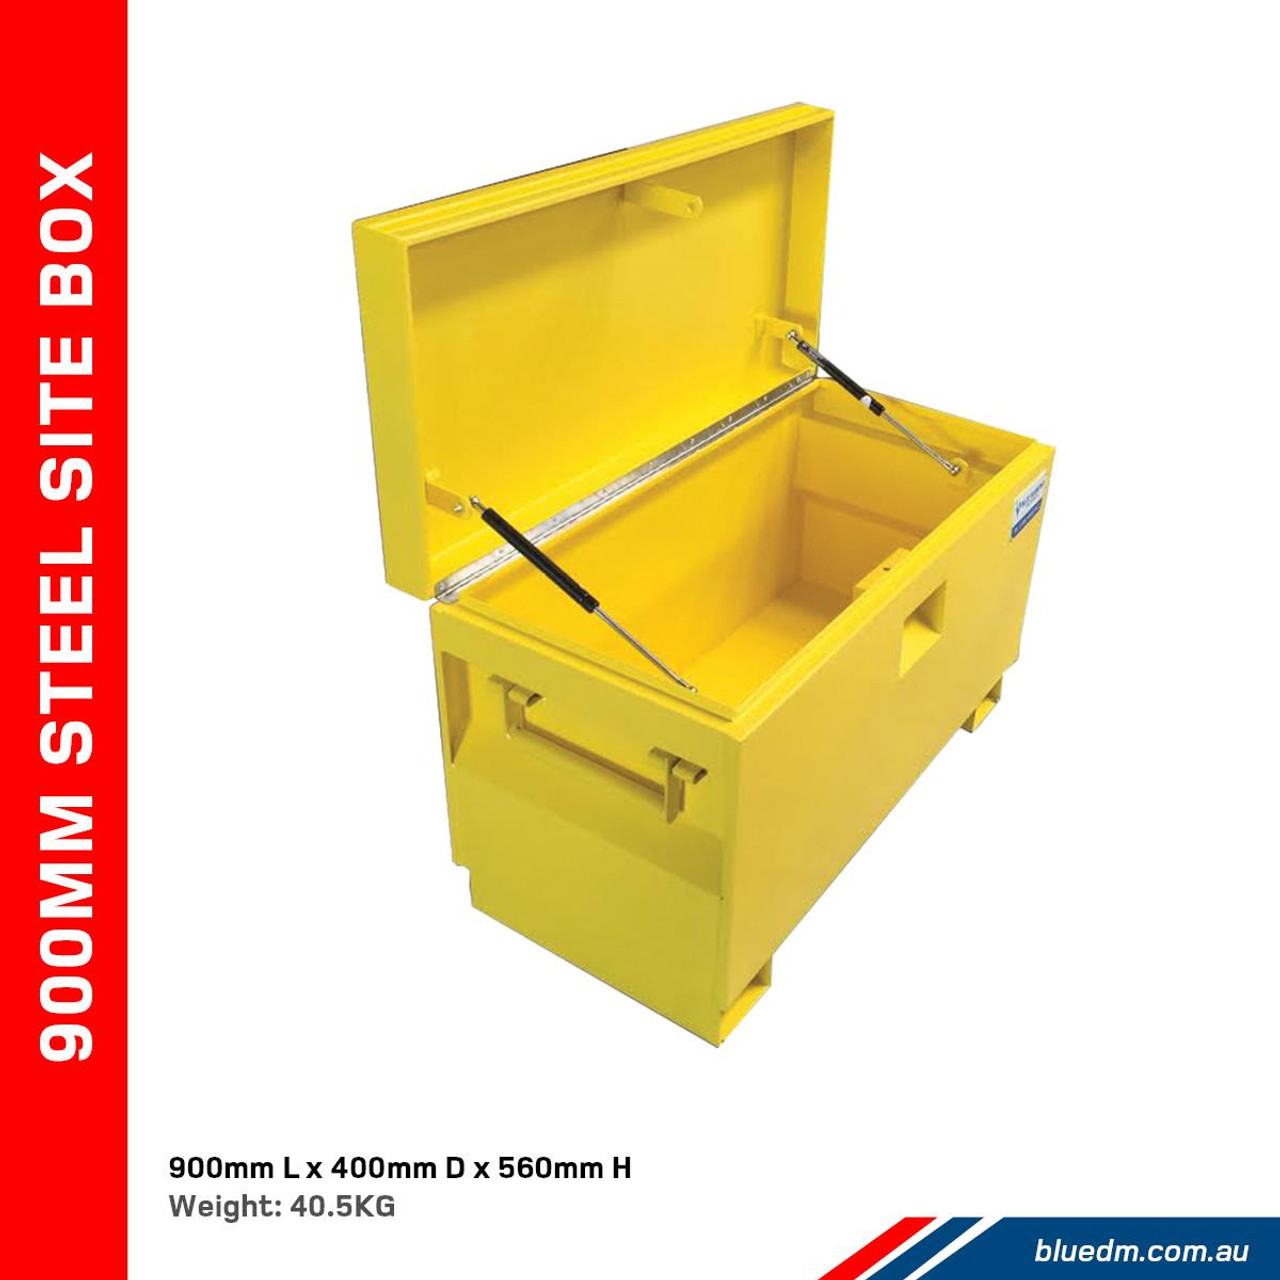 steel tool check to- secure storage for your tools